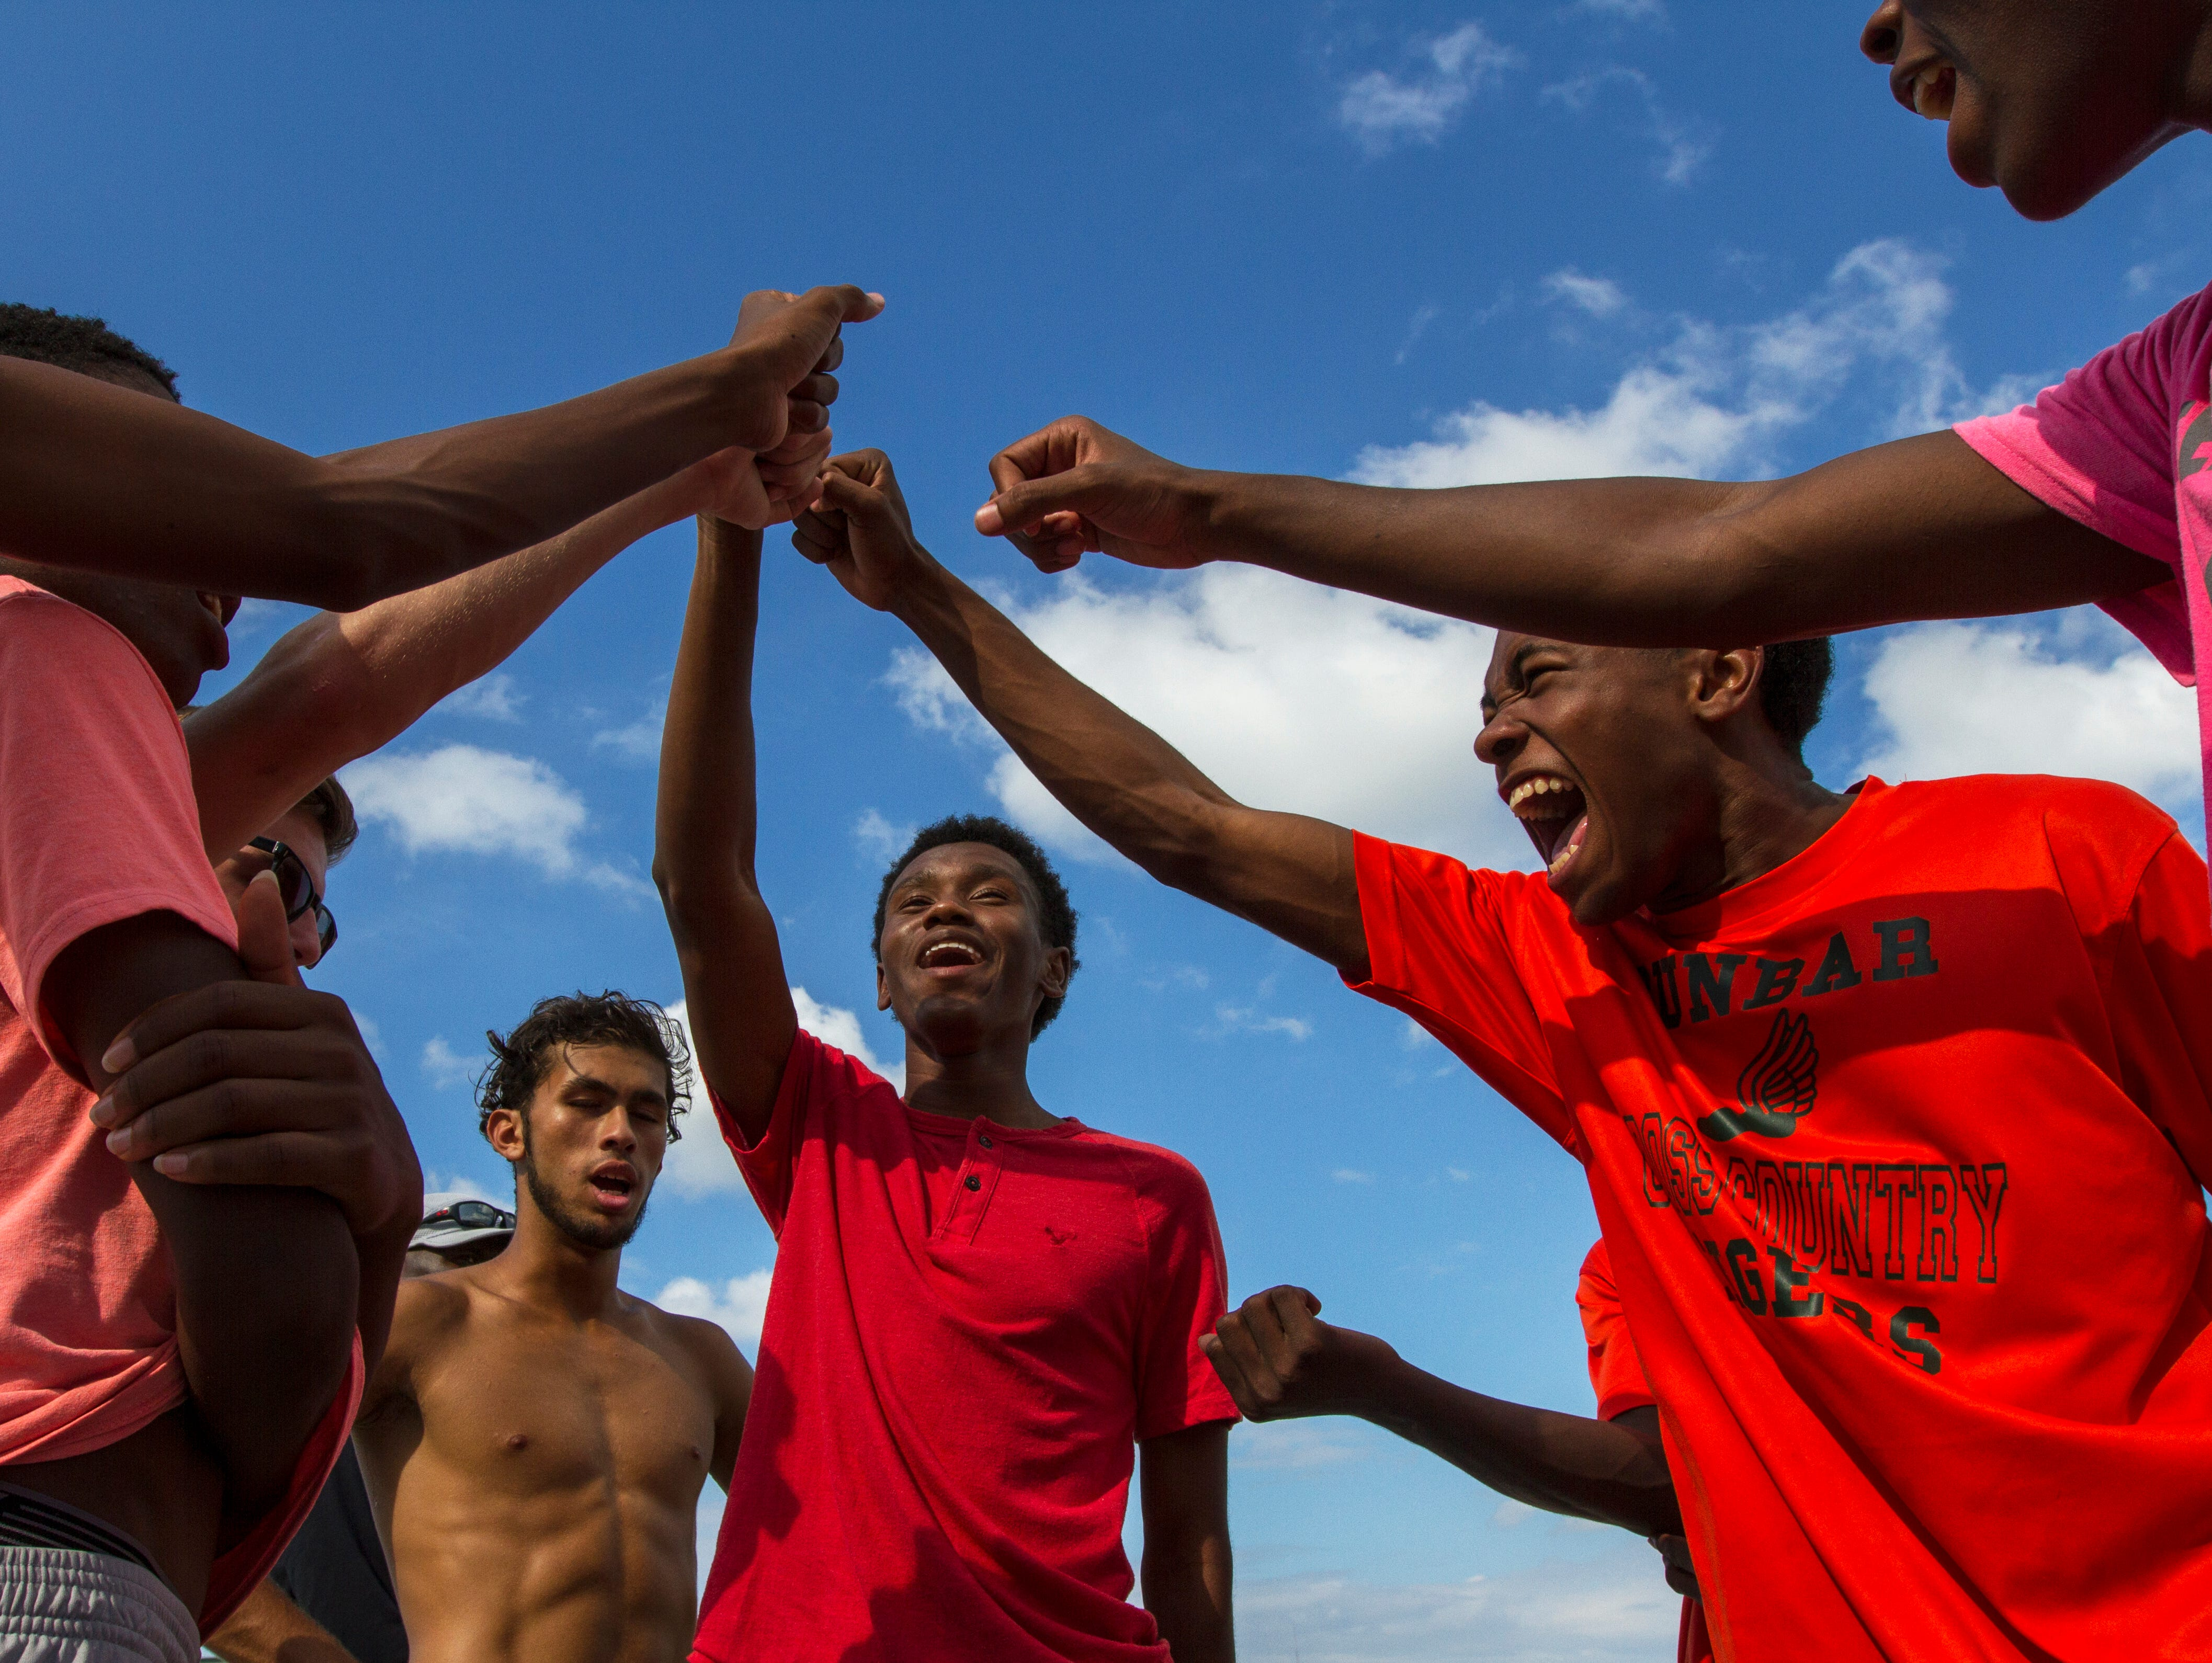 Members of the Dunbar High School cross country team chant in unity as they conclude their practice Wednesday, November 2, in Fort Myers. The cross country team has qualified for its first state championship in school history.